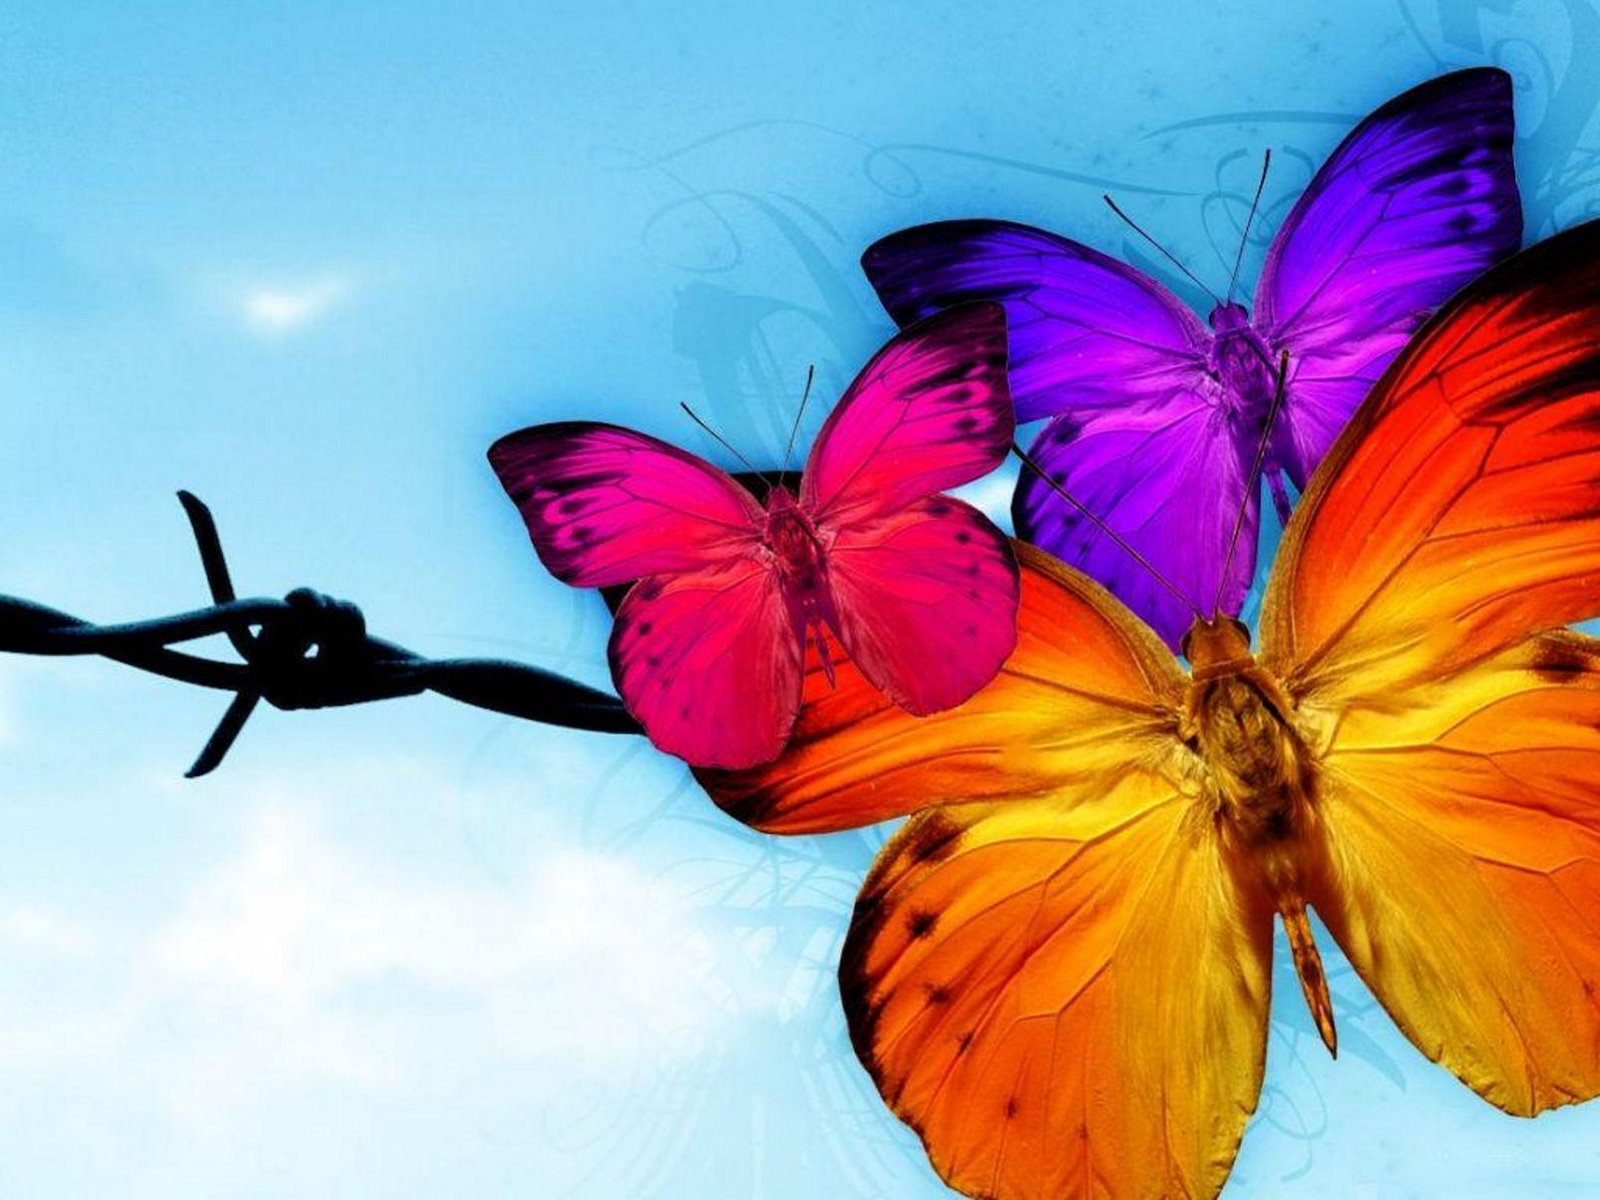 Butterfly HD Wallpapers we provide the best and high quality 1600x1200